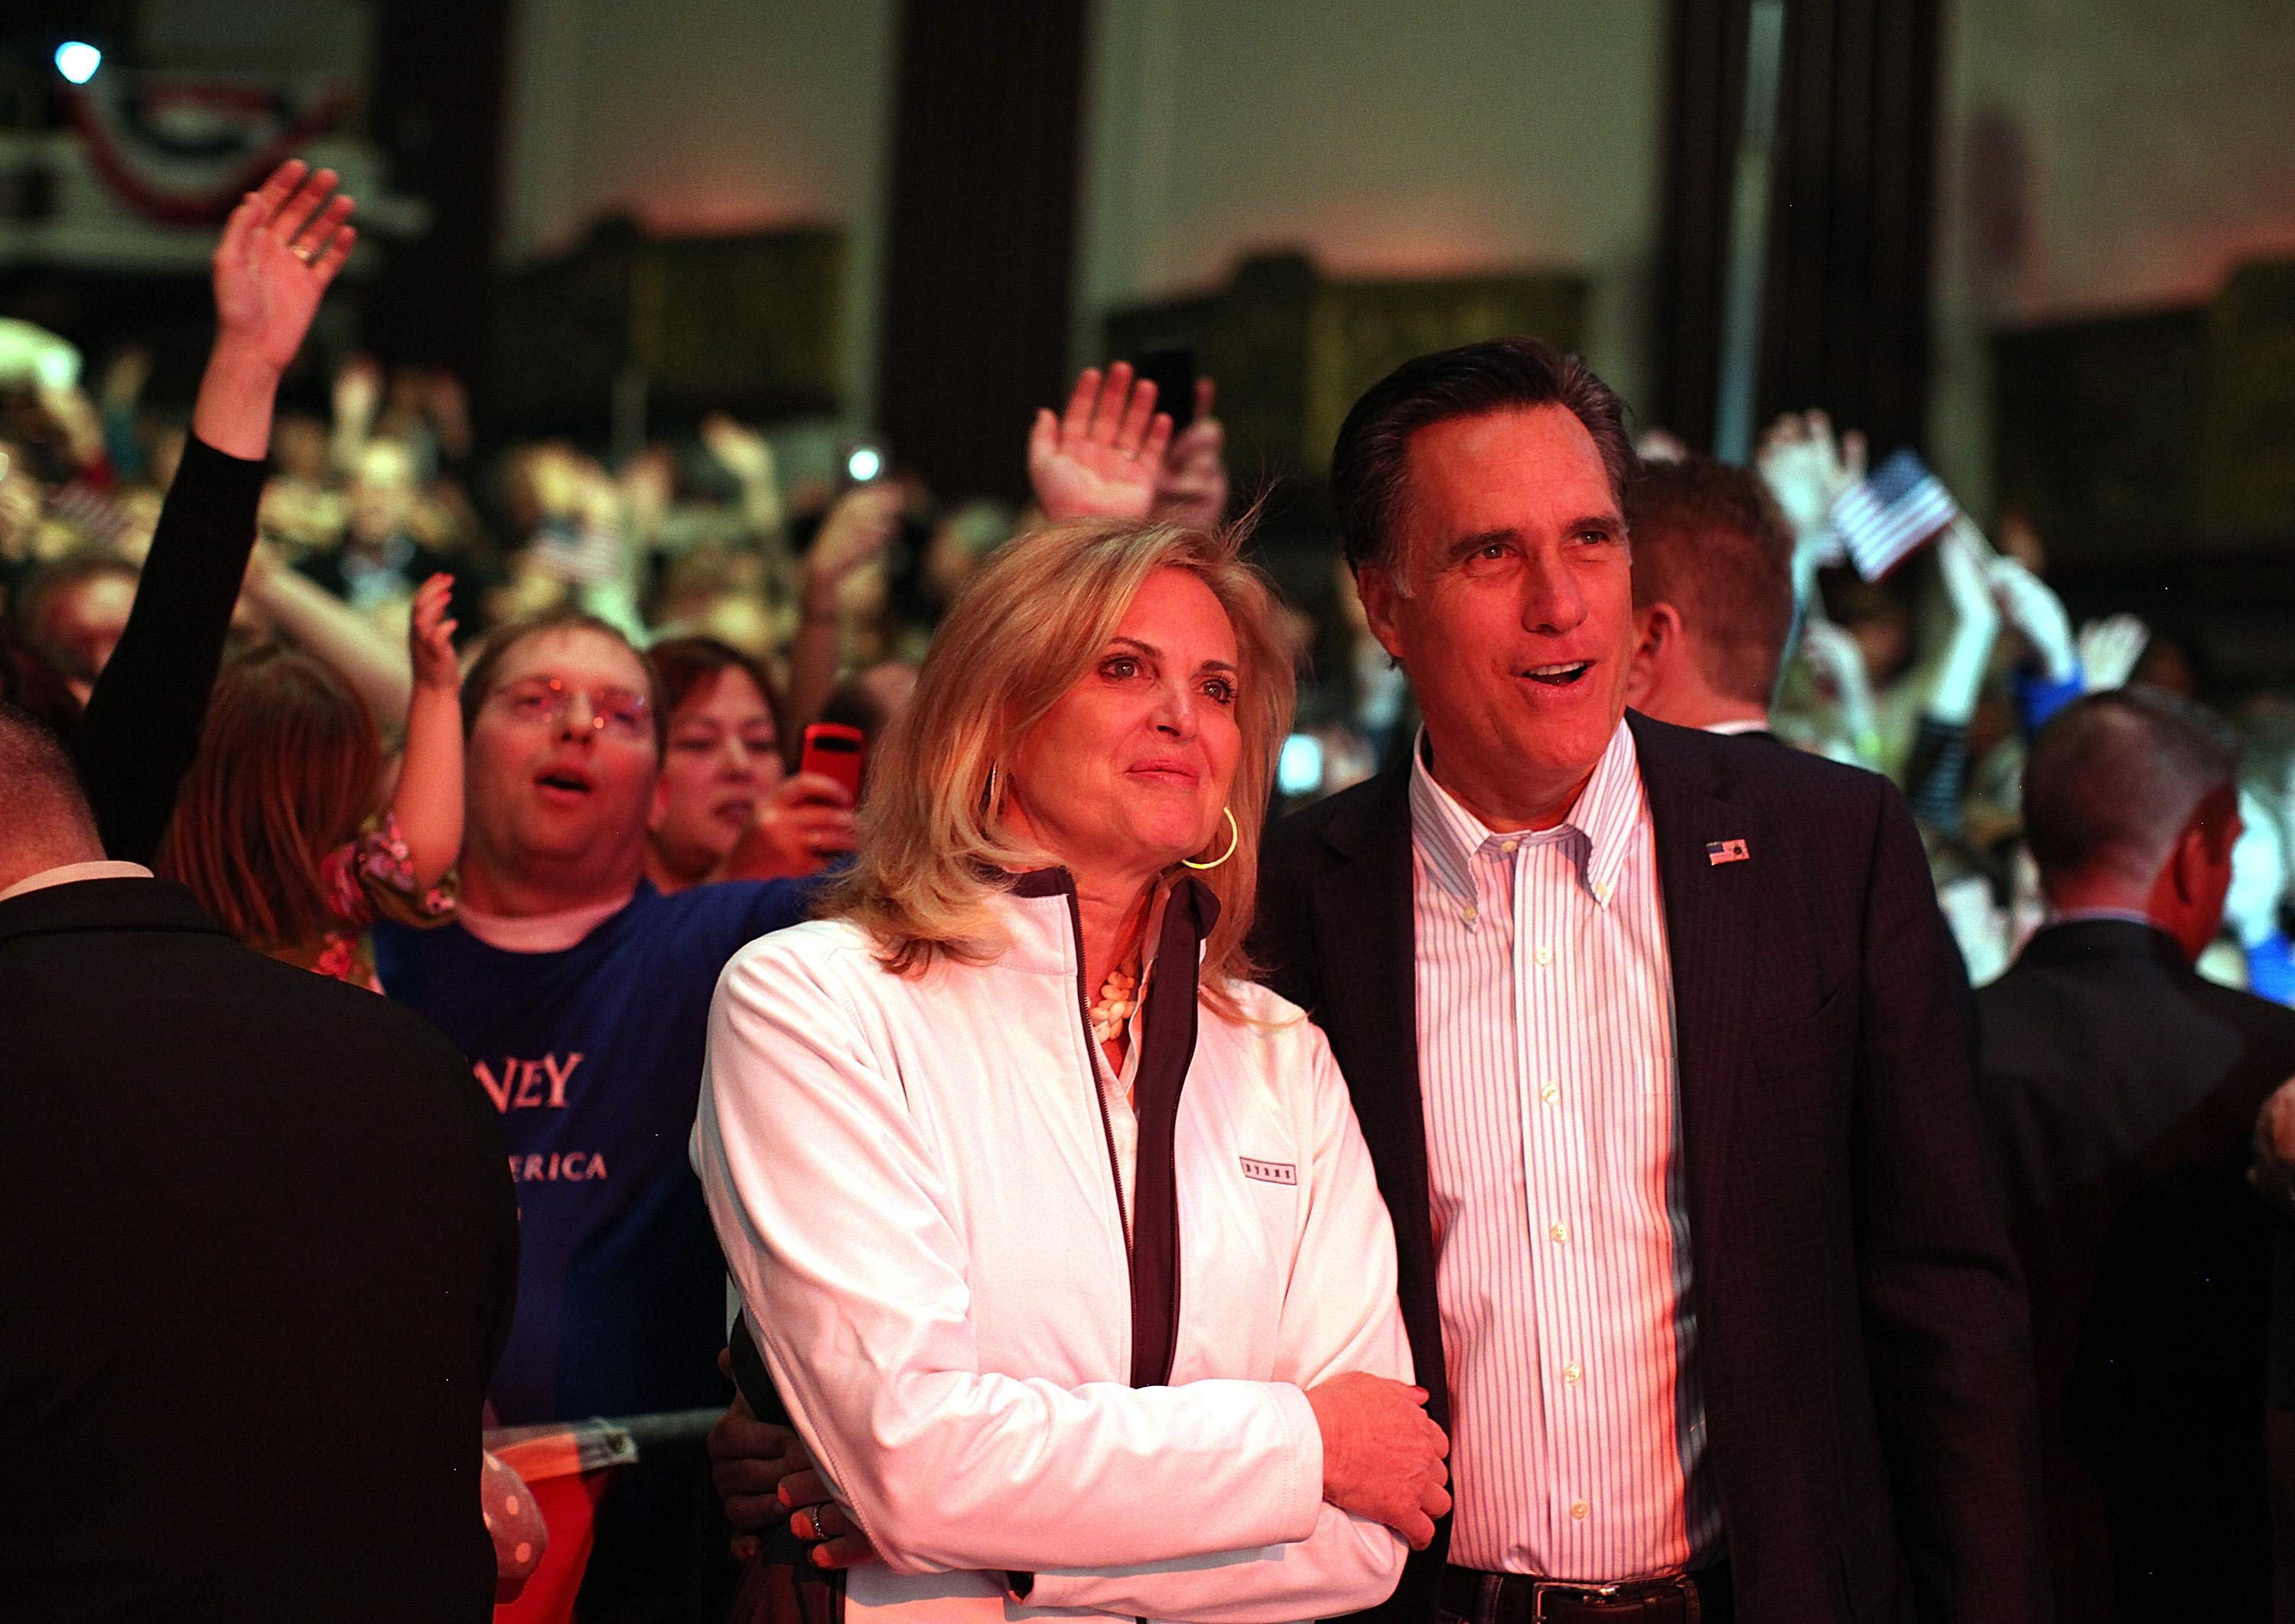 ROYAL OAK, MI - FEBRUARY 27: Republican presidential candidate and former Massachusetts Gov. Mitt Romney (R) and his wife Ann Romney look on as musician Kid Rock performs during a campaign rally at the Royal Oak Theatre on February 27, 2012 in Royal Oak, Michigan. Michigan residents will go to the polls on February 28 to vote for their choice in the Republican presidential race. (Photo by Justin Sullivan/Getty Images)